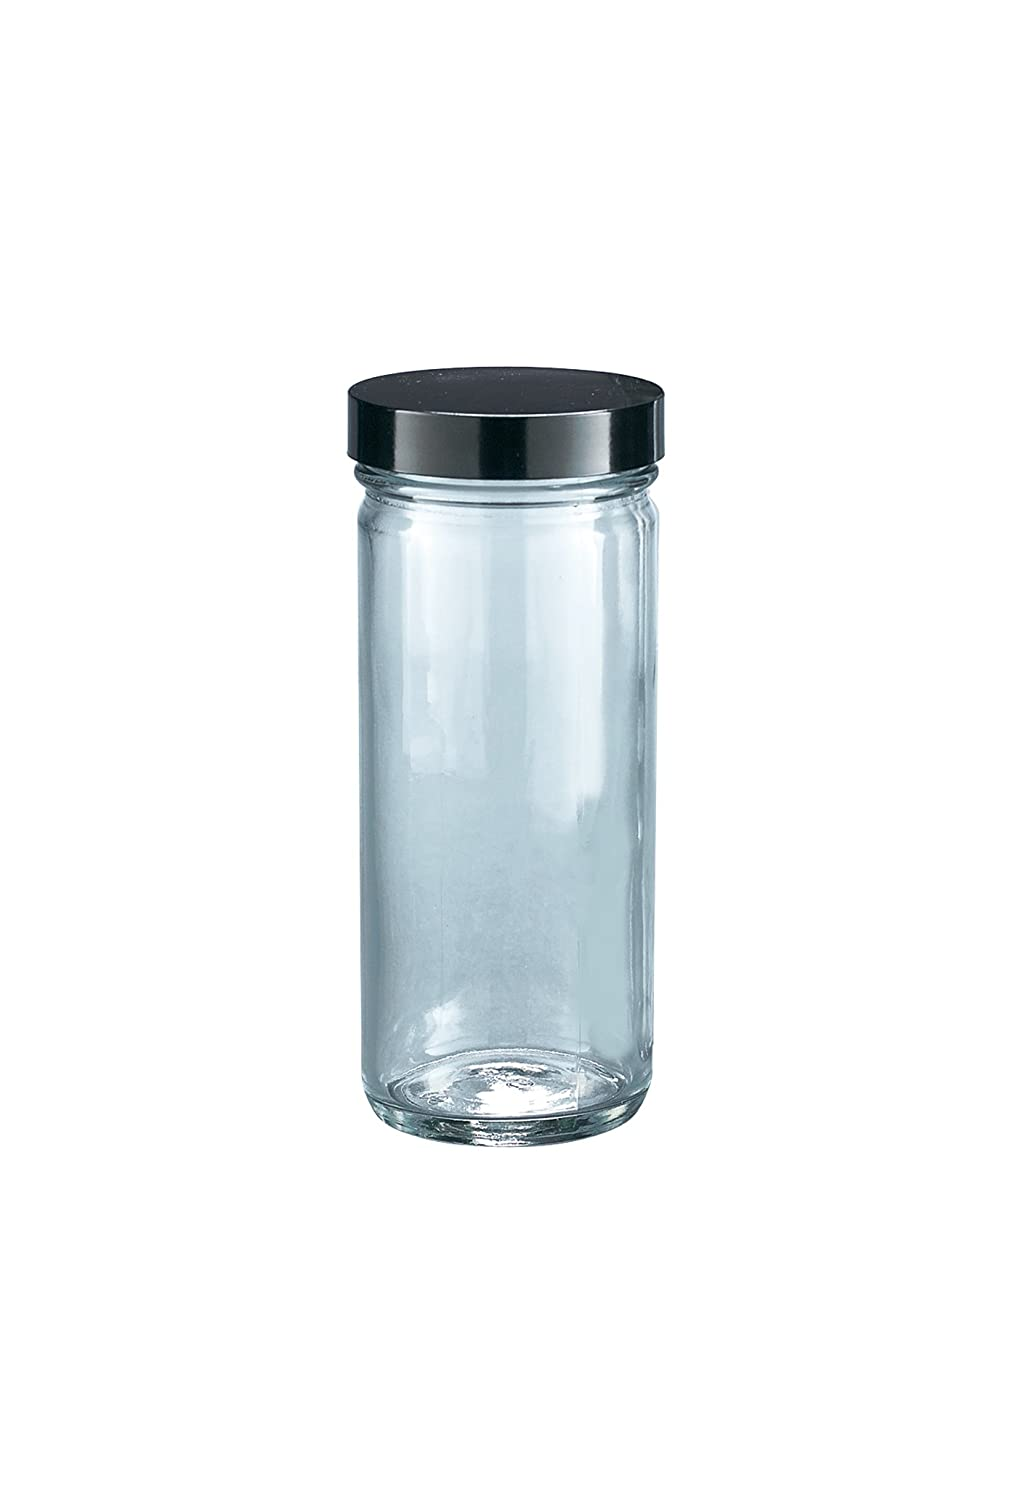 Kimble Type III Soda-Lime Glass Clear Straight-Sided Tall Wide Mouth Jars with Solid PE Caps Case of 12 Capacity 32oz